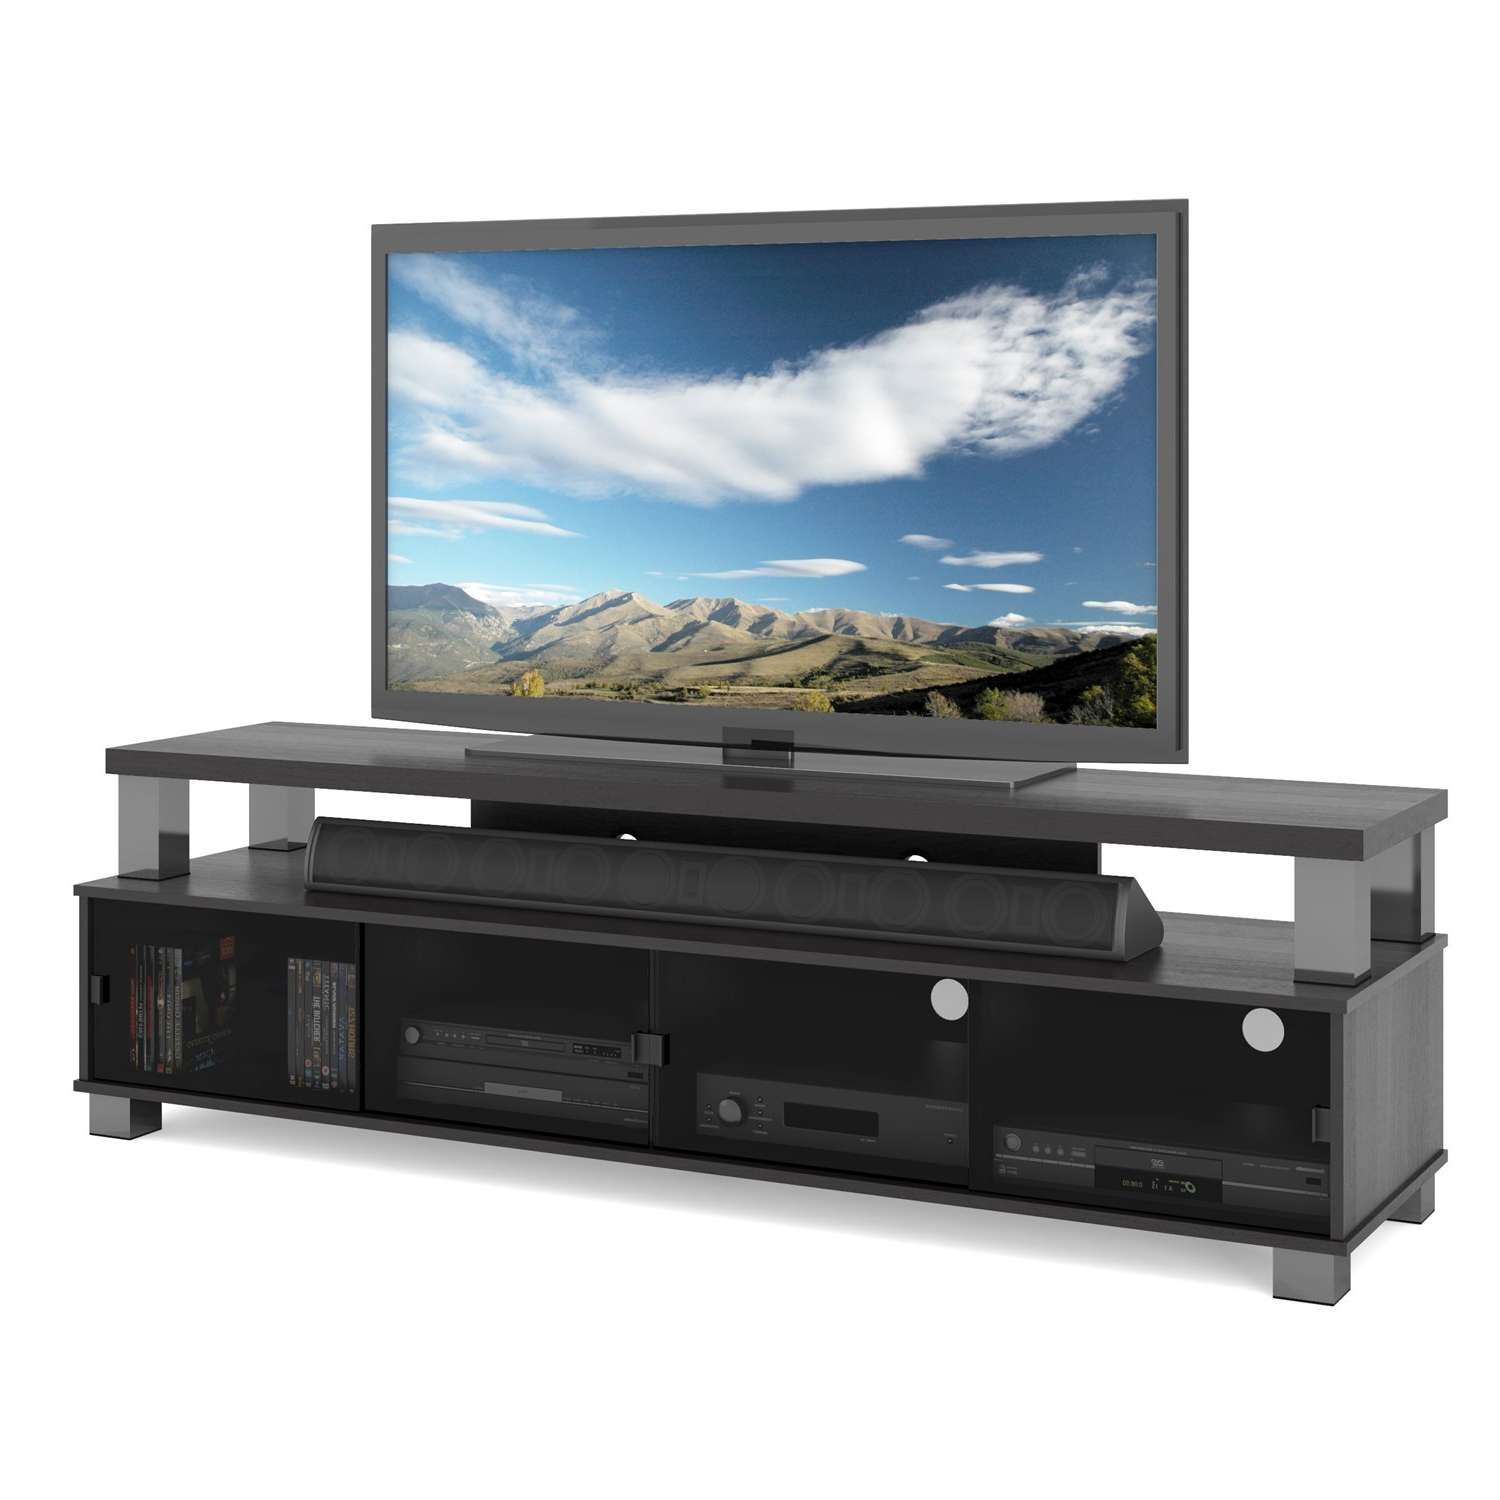 "Sonax Bromley 75"" Ravenwood Black 2 Tier Tv Stand – B 003 Rbt Inside Sonax Tv Stands (View 11 of 15)"